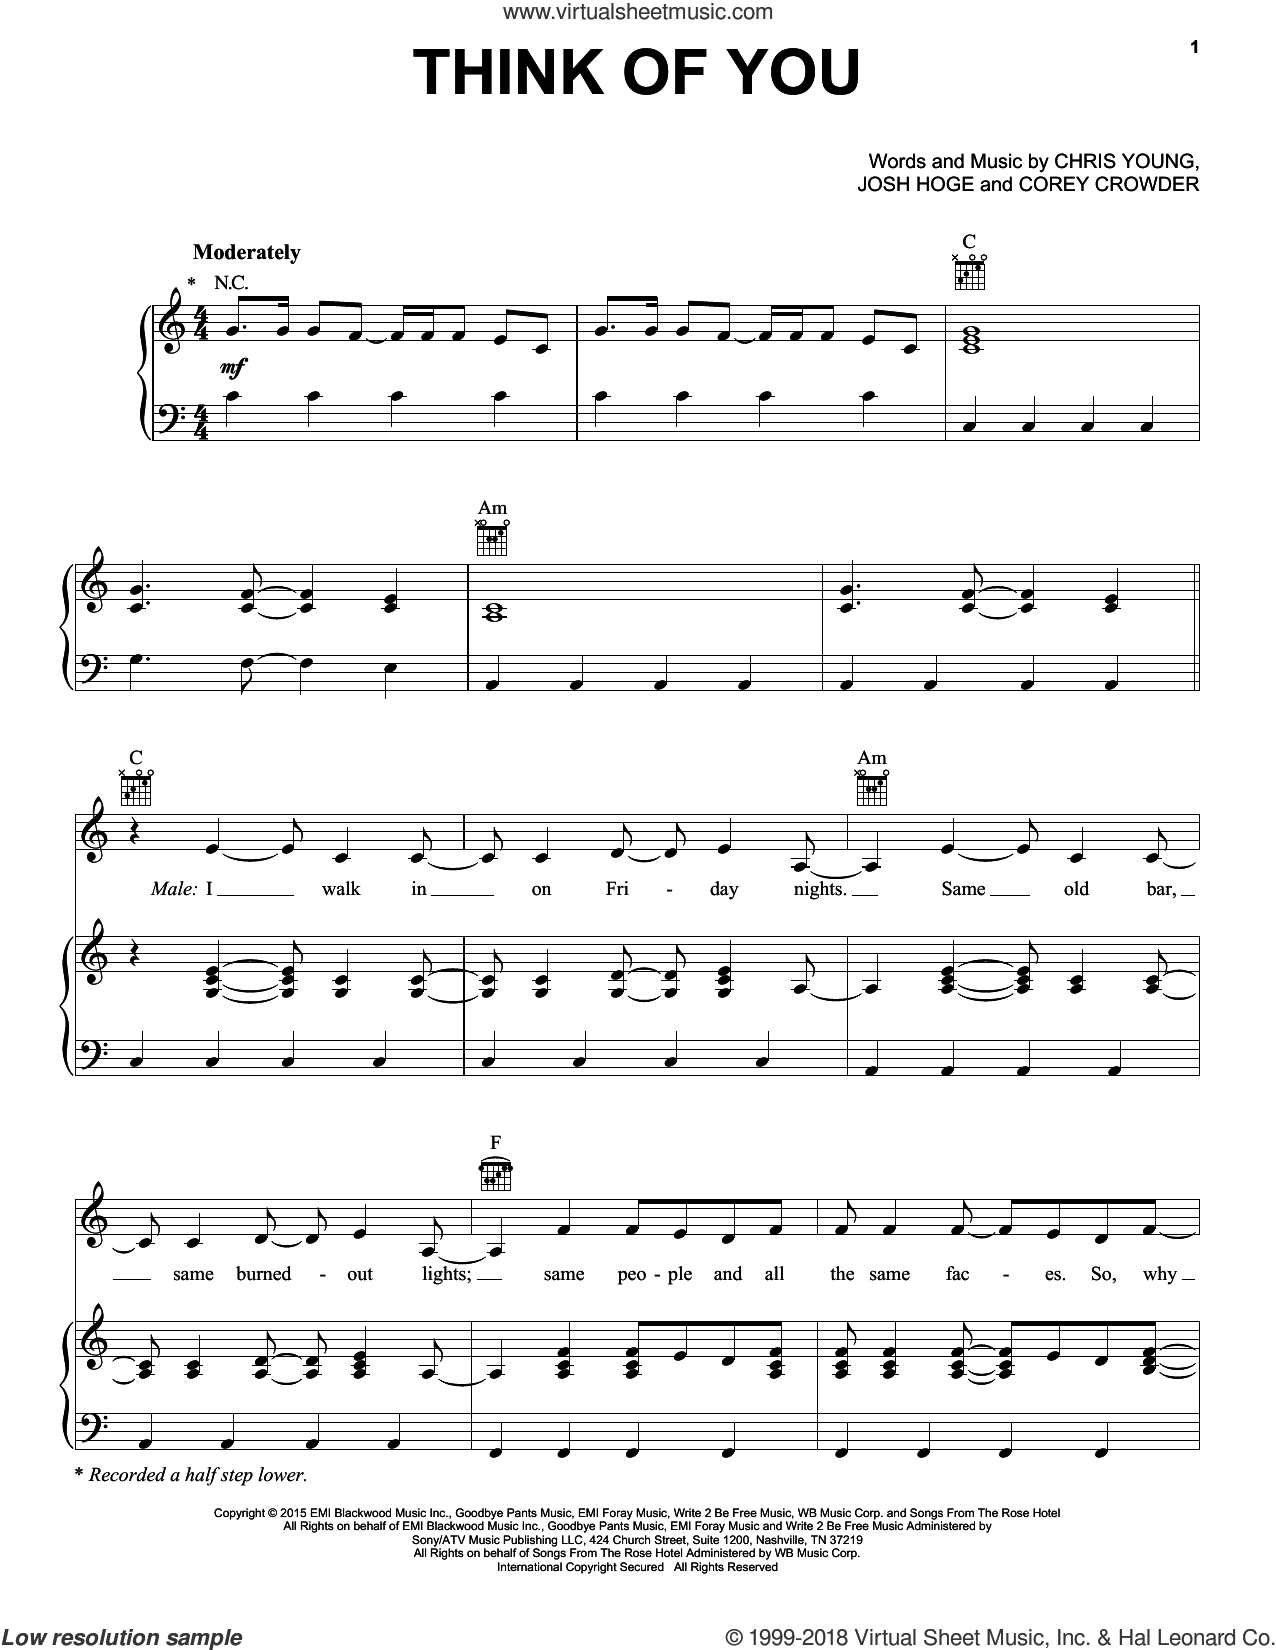 Think Of You sheet music for voice, piano or guitar by Chris Young with Cassadee Pope, Chris Young, Corey Crowder and Josh Hoge, intermediate skill level